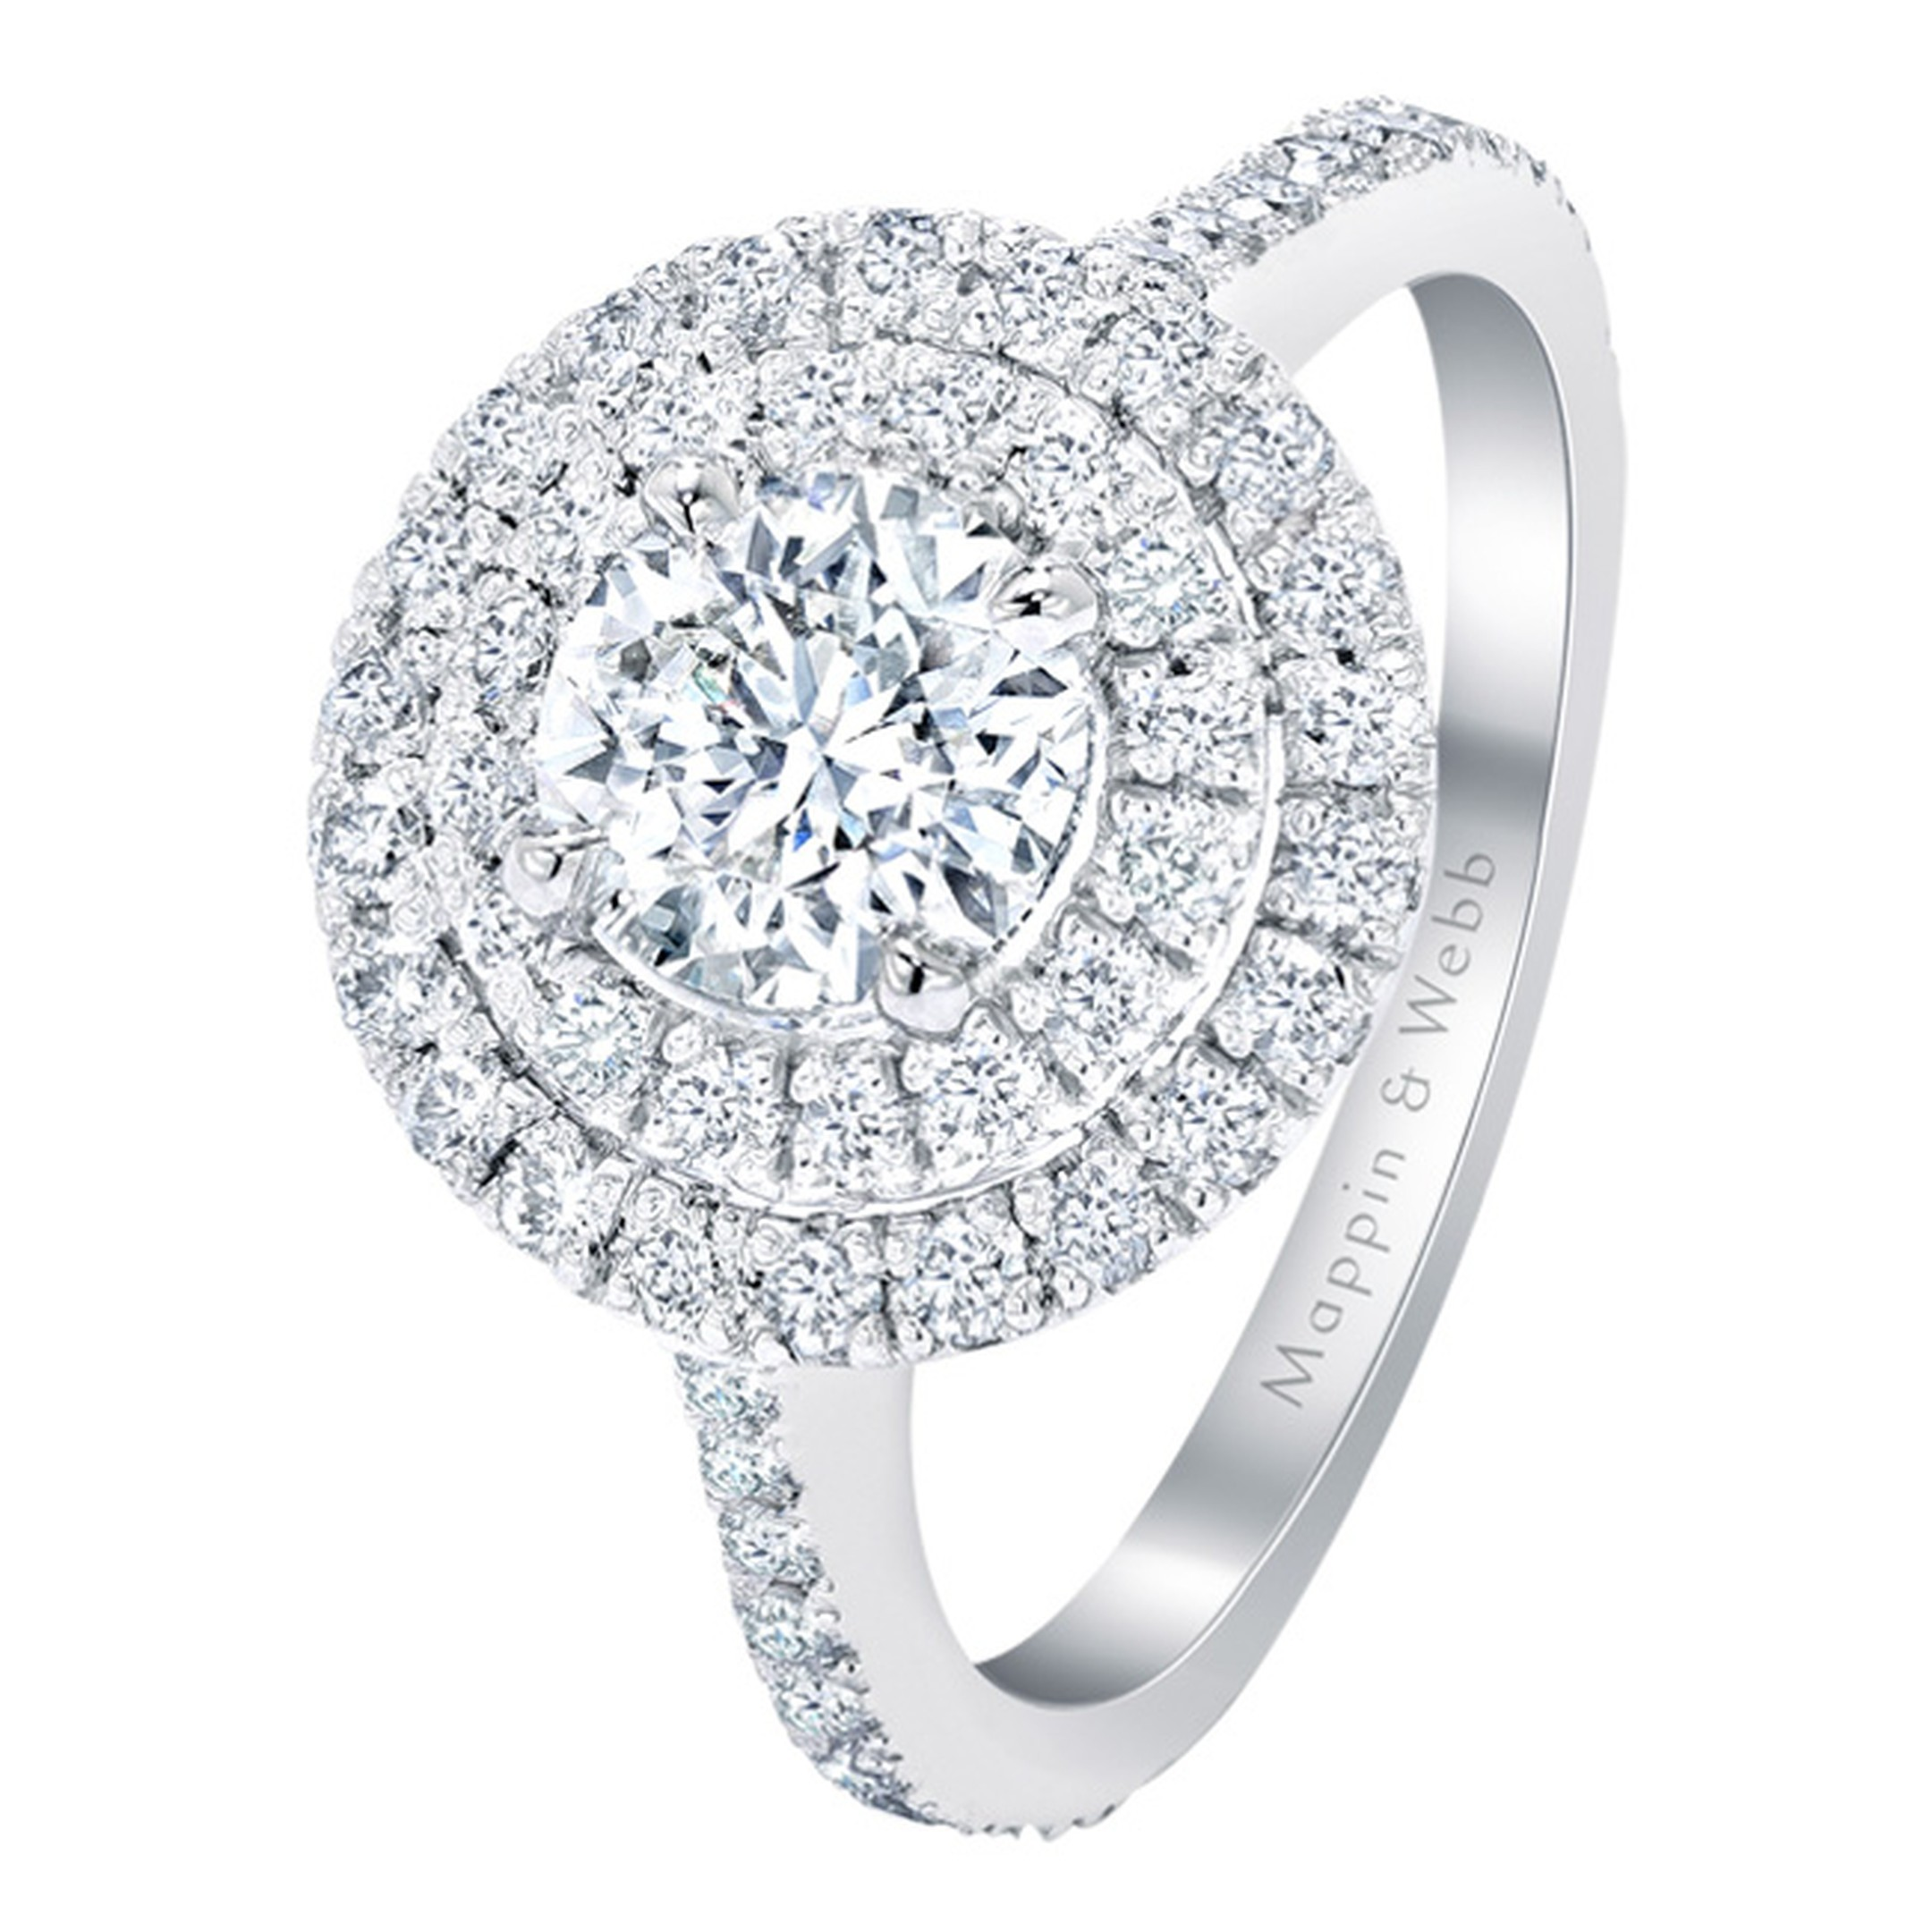 Mappin & Webb Alba diamond engagement ring_20130926_Thumbnail